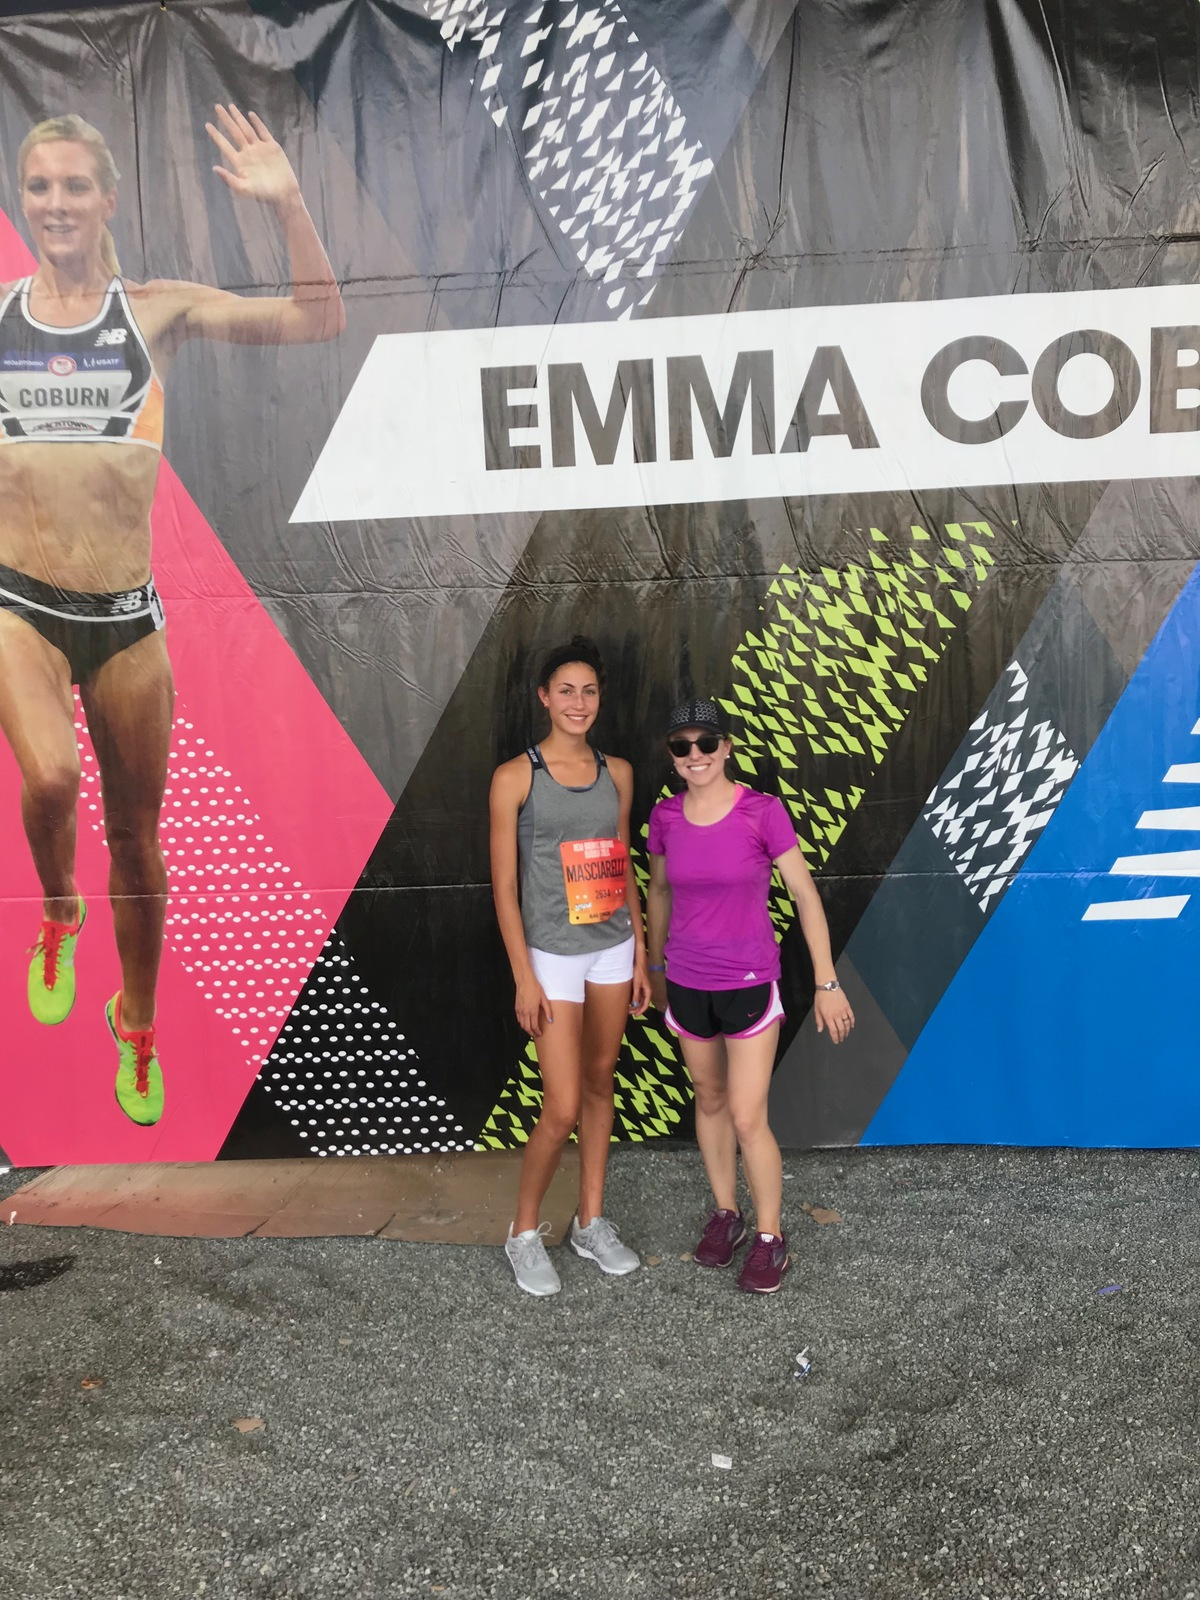 Sydney Masciarelli '21 Competes in New Balance Outdoor Track Nationals